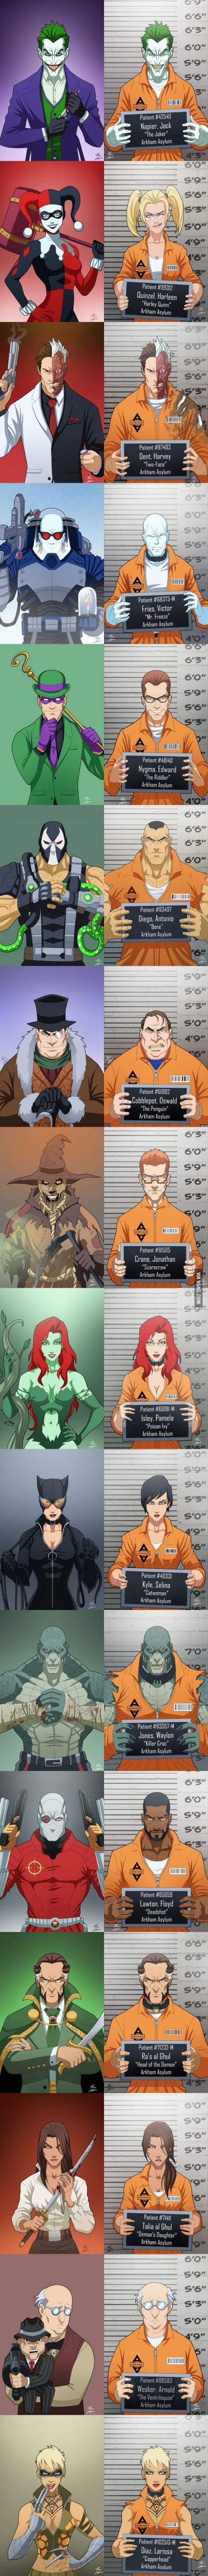 Batman's villains real names!